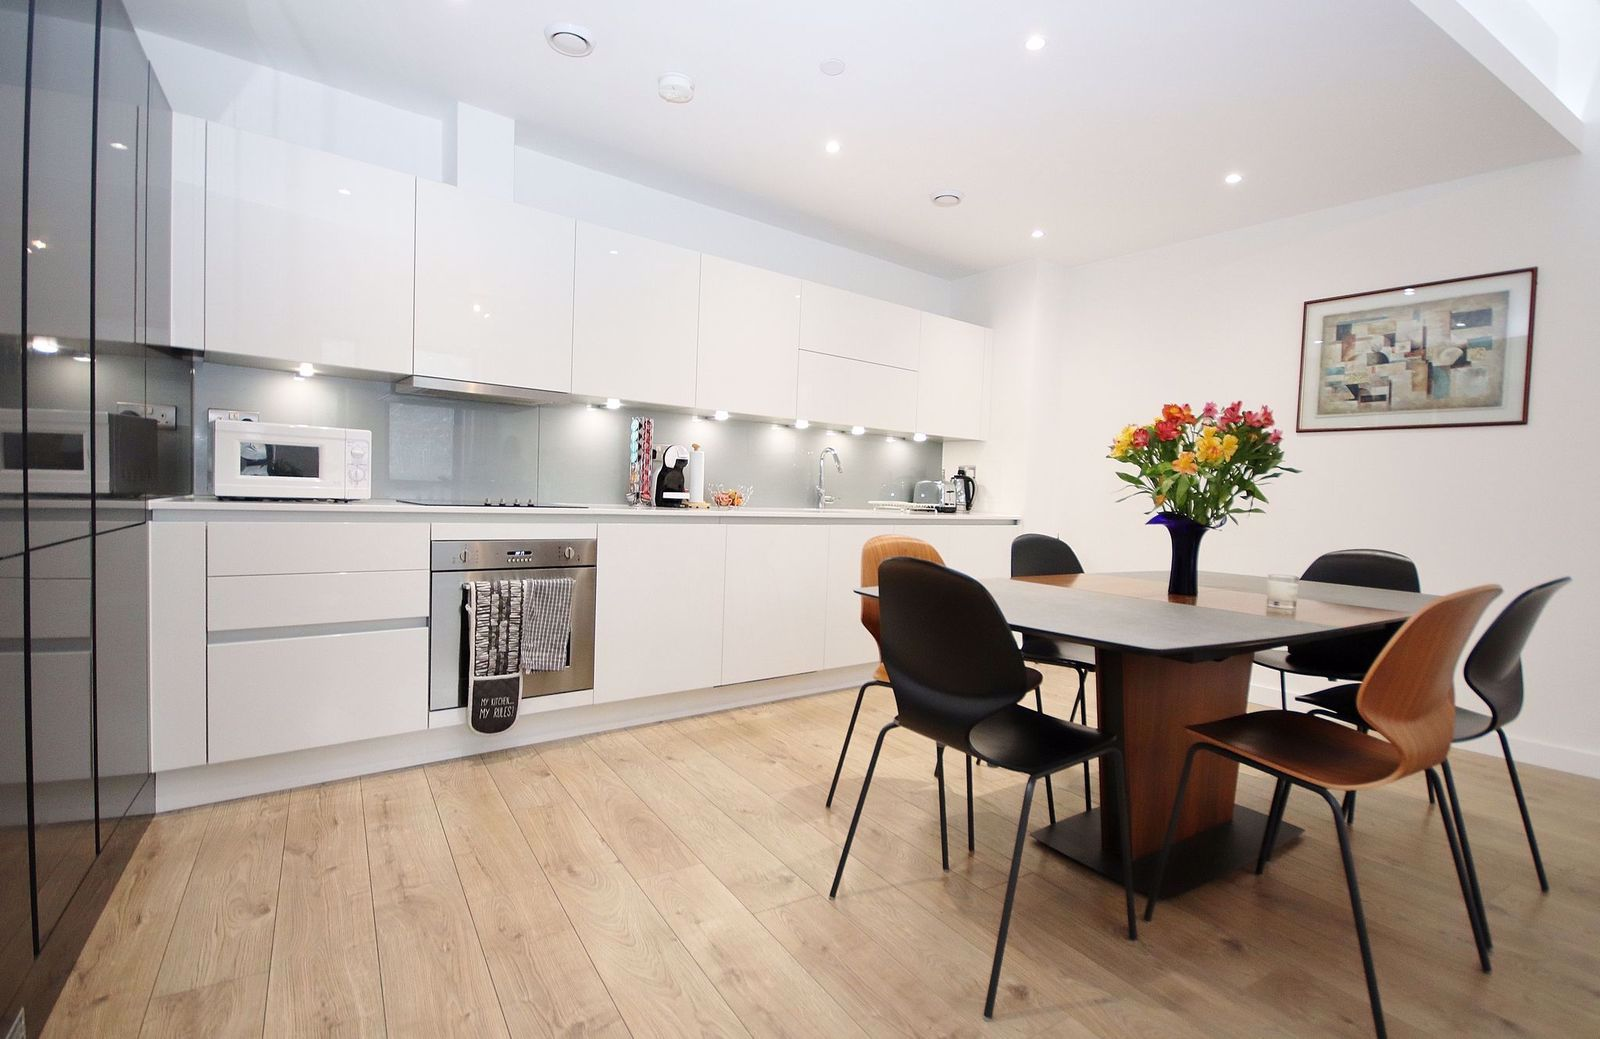 3 bed flat for sale in Williamsburg Plaza - Property Image 1